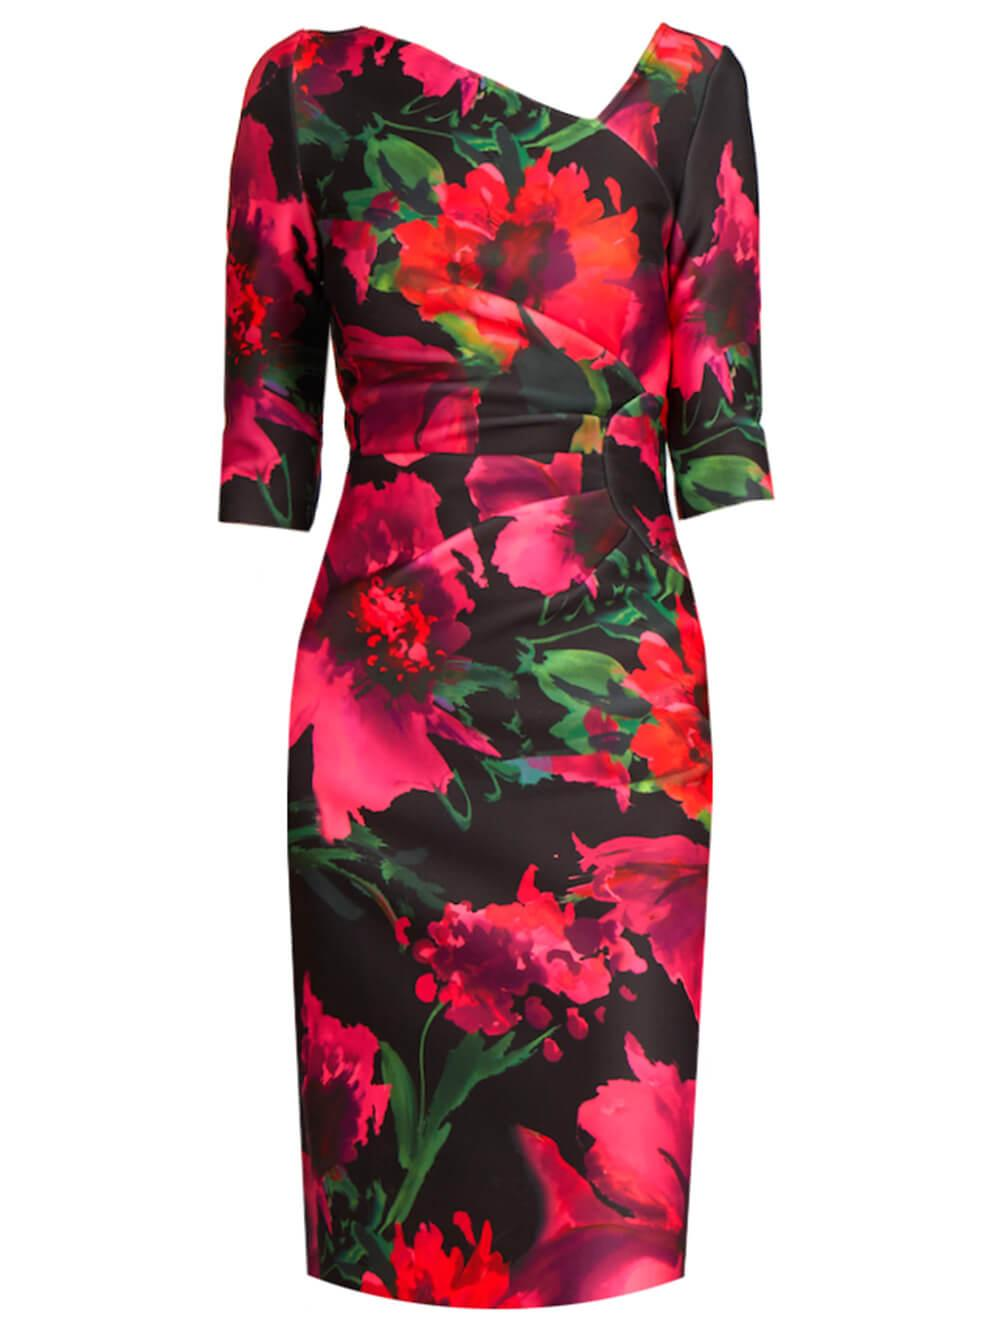 Floral Fitted Dress Item # 21301